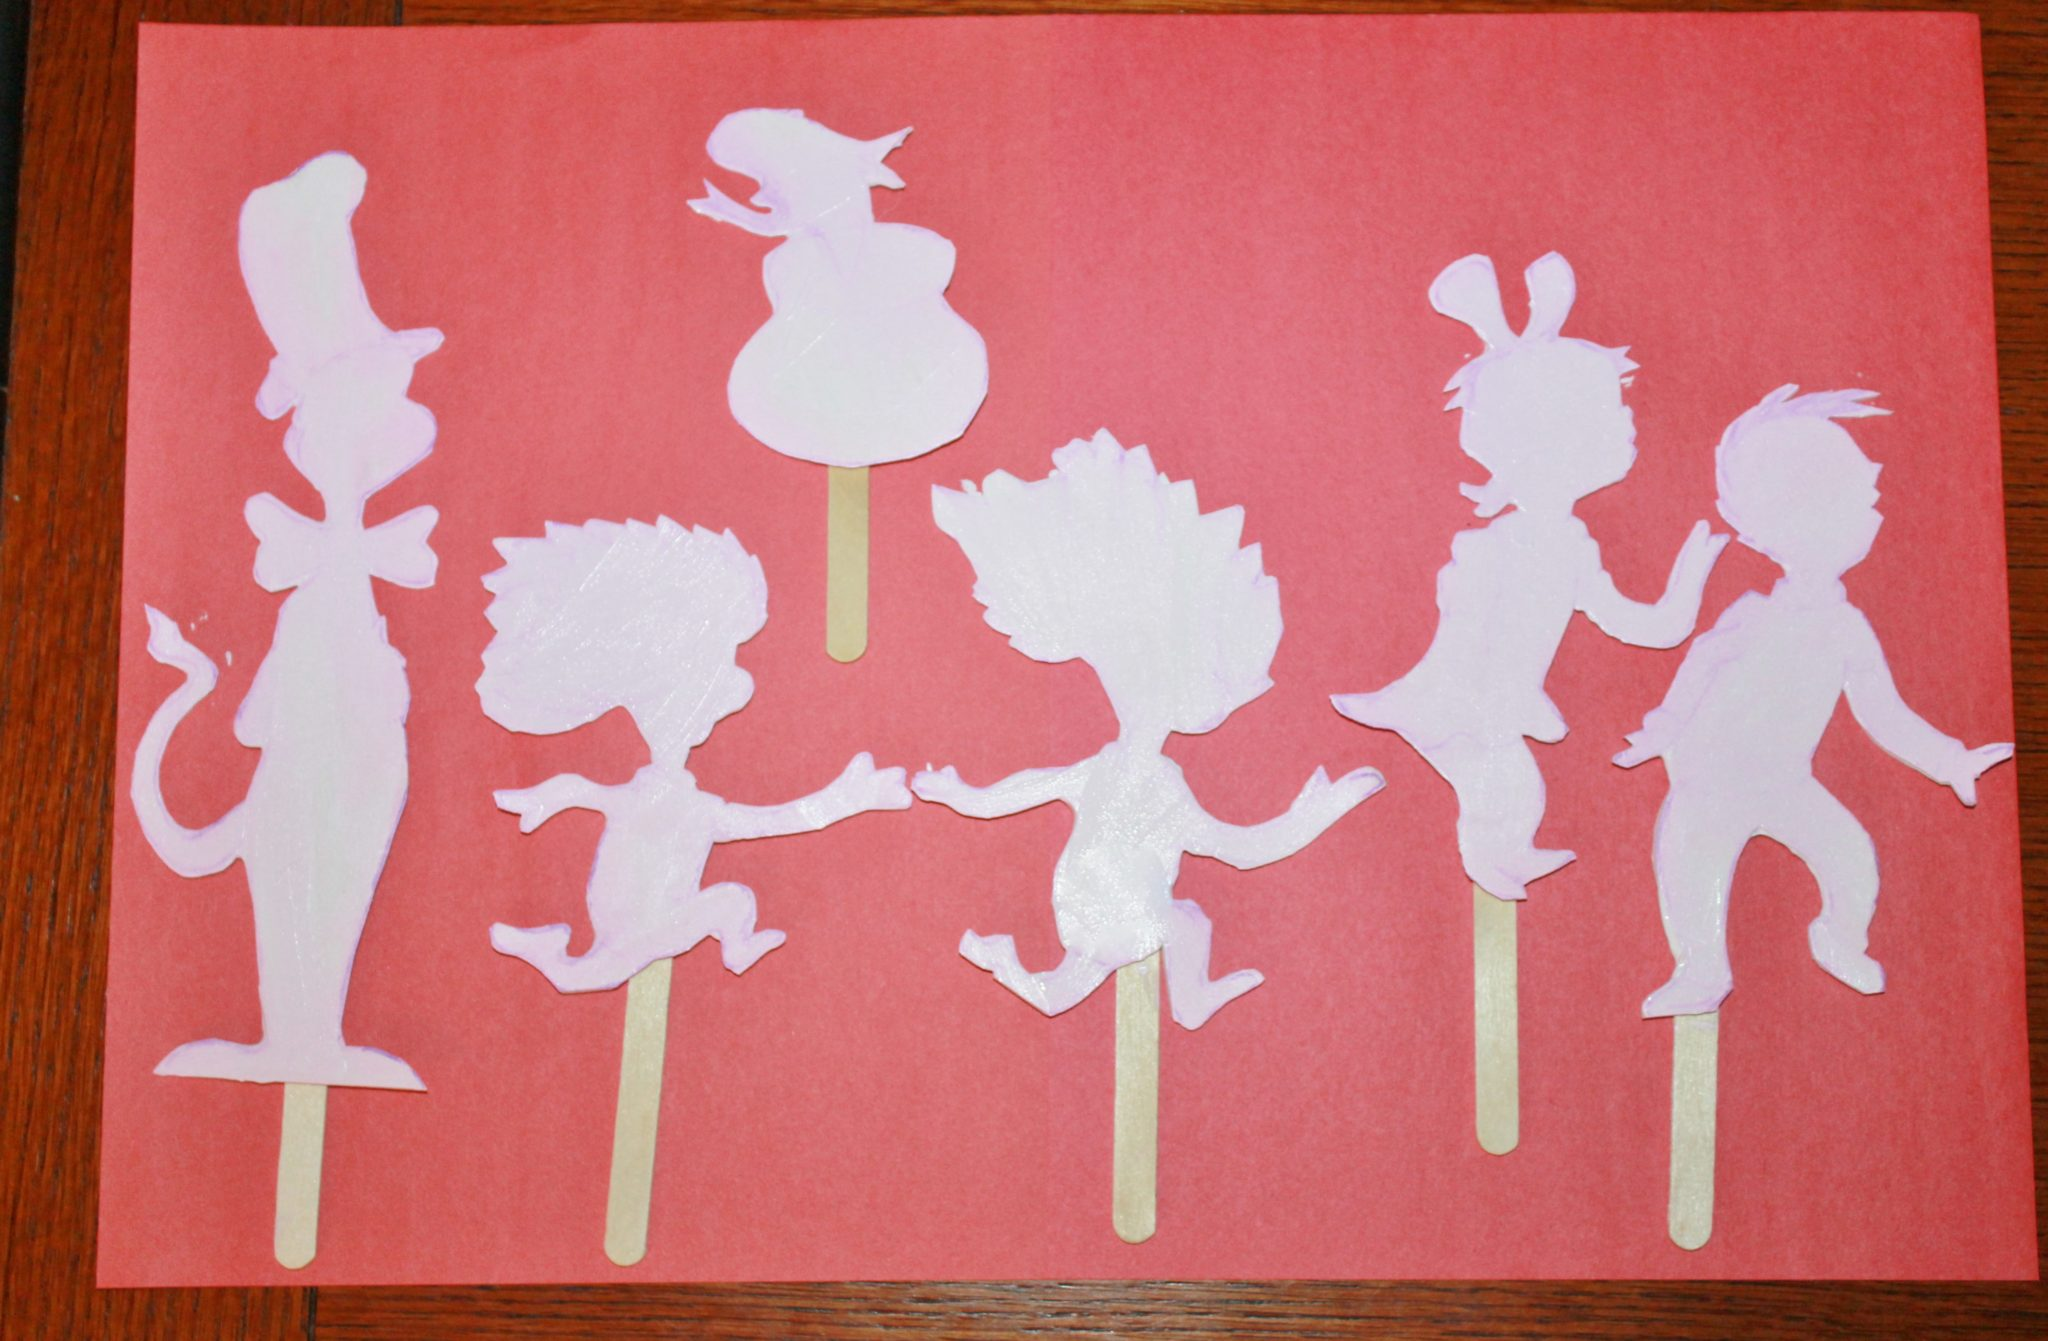 Dr Seuss Shadow Puppets Free Printable Cut Outs The